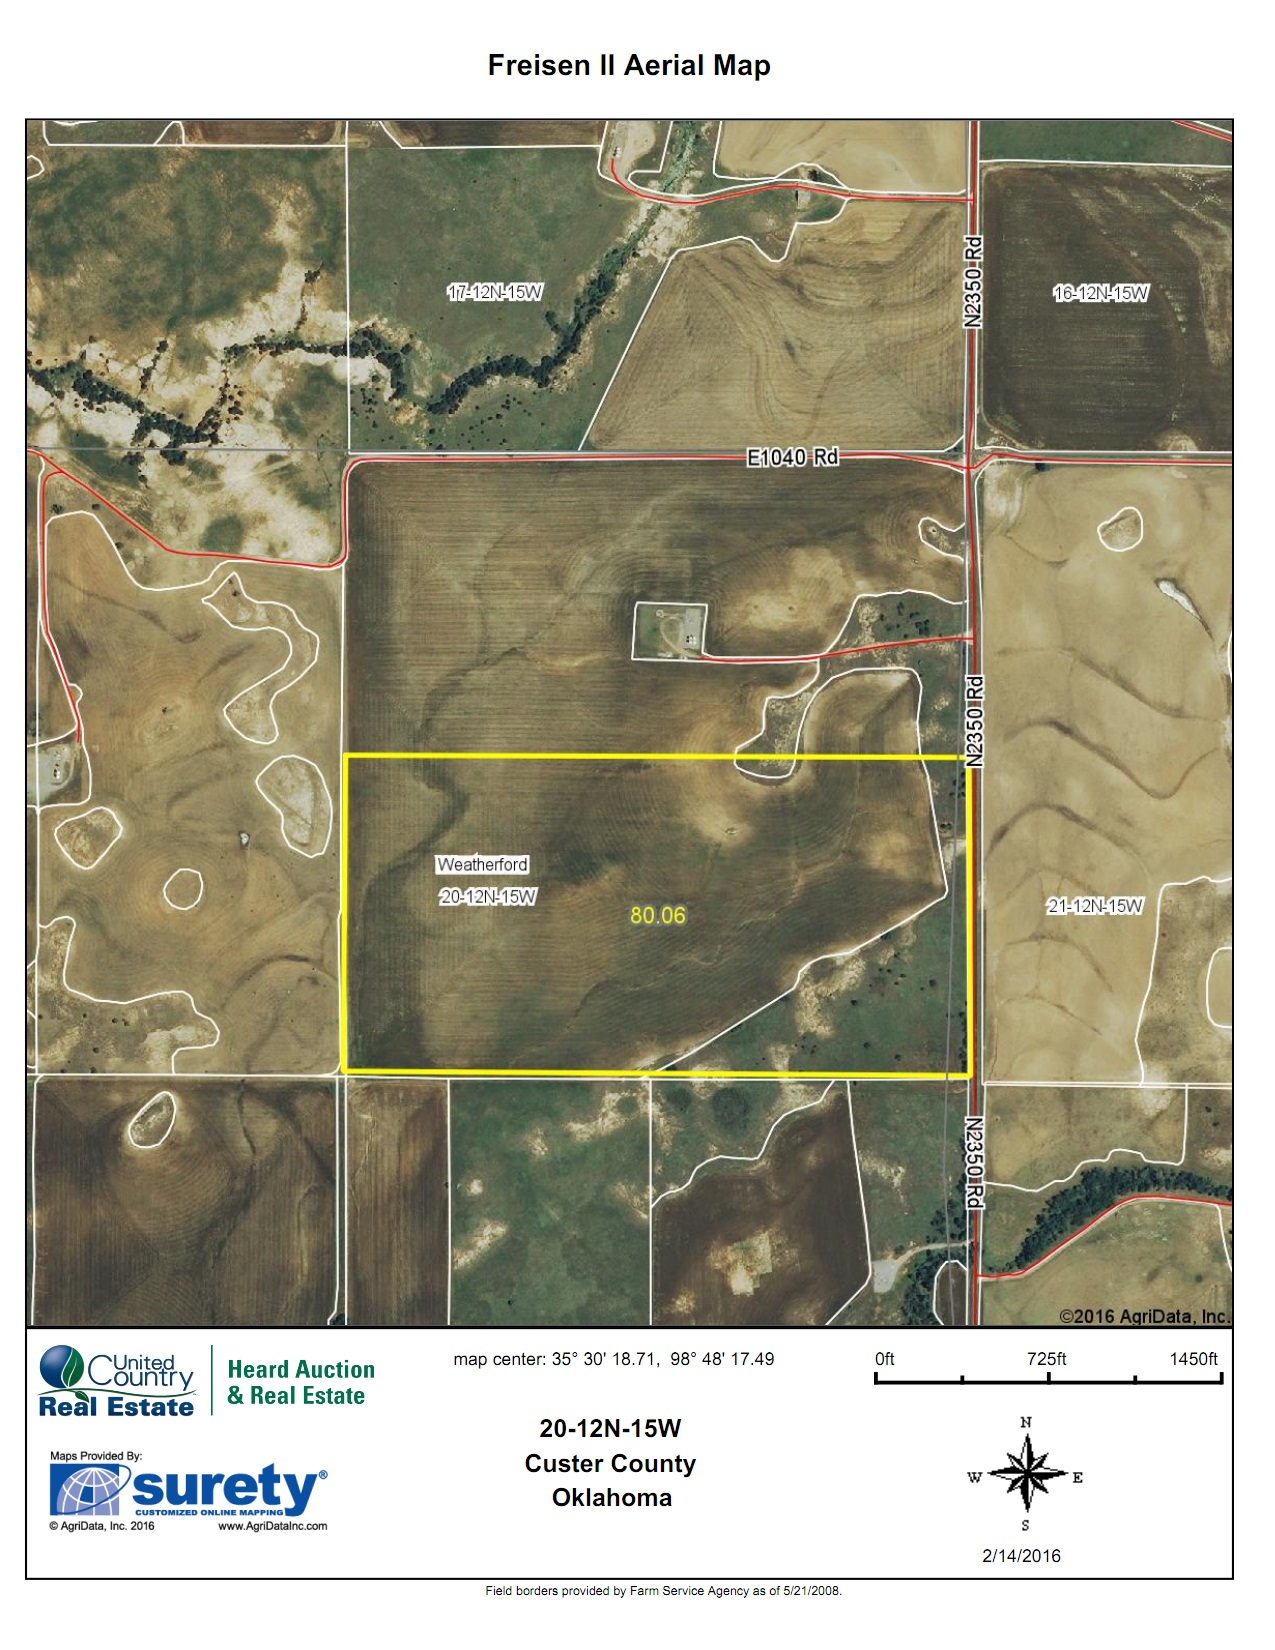 Oklahoma Farm for Sale, Custer County, Tract 4